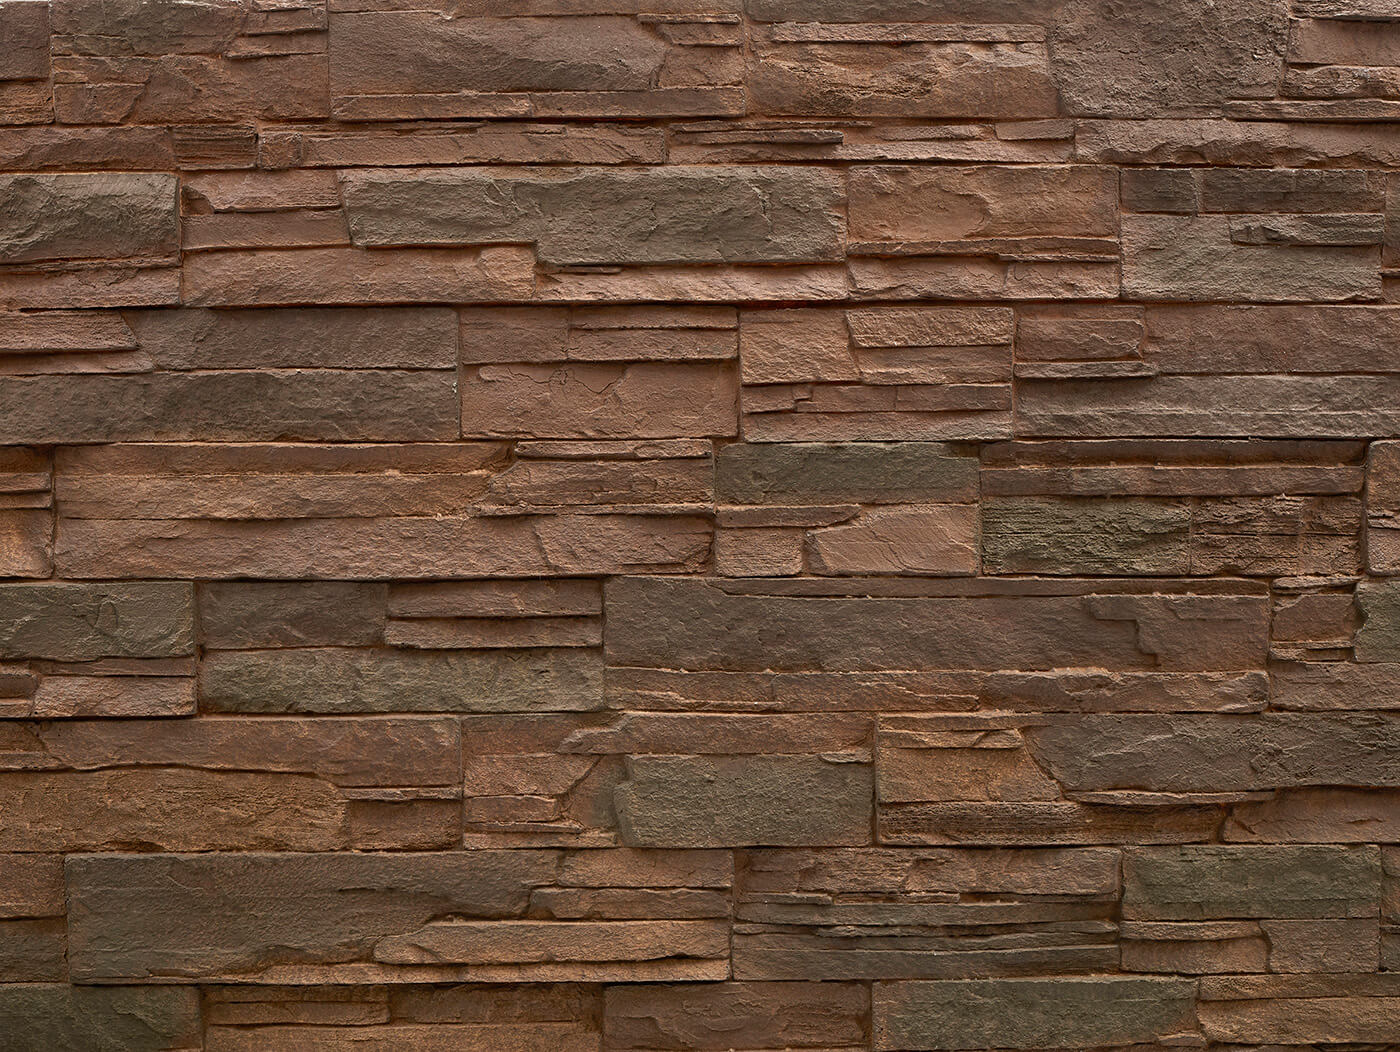 Stone-like strata #Brown